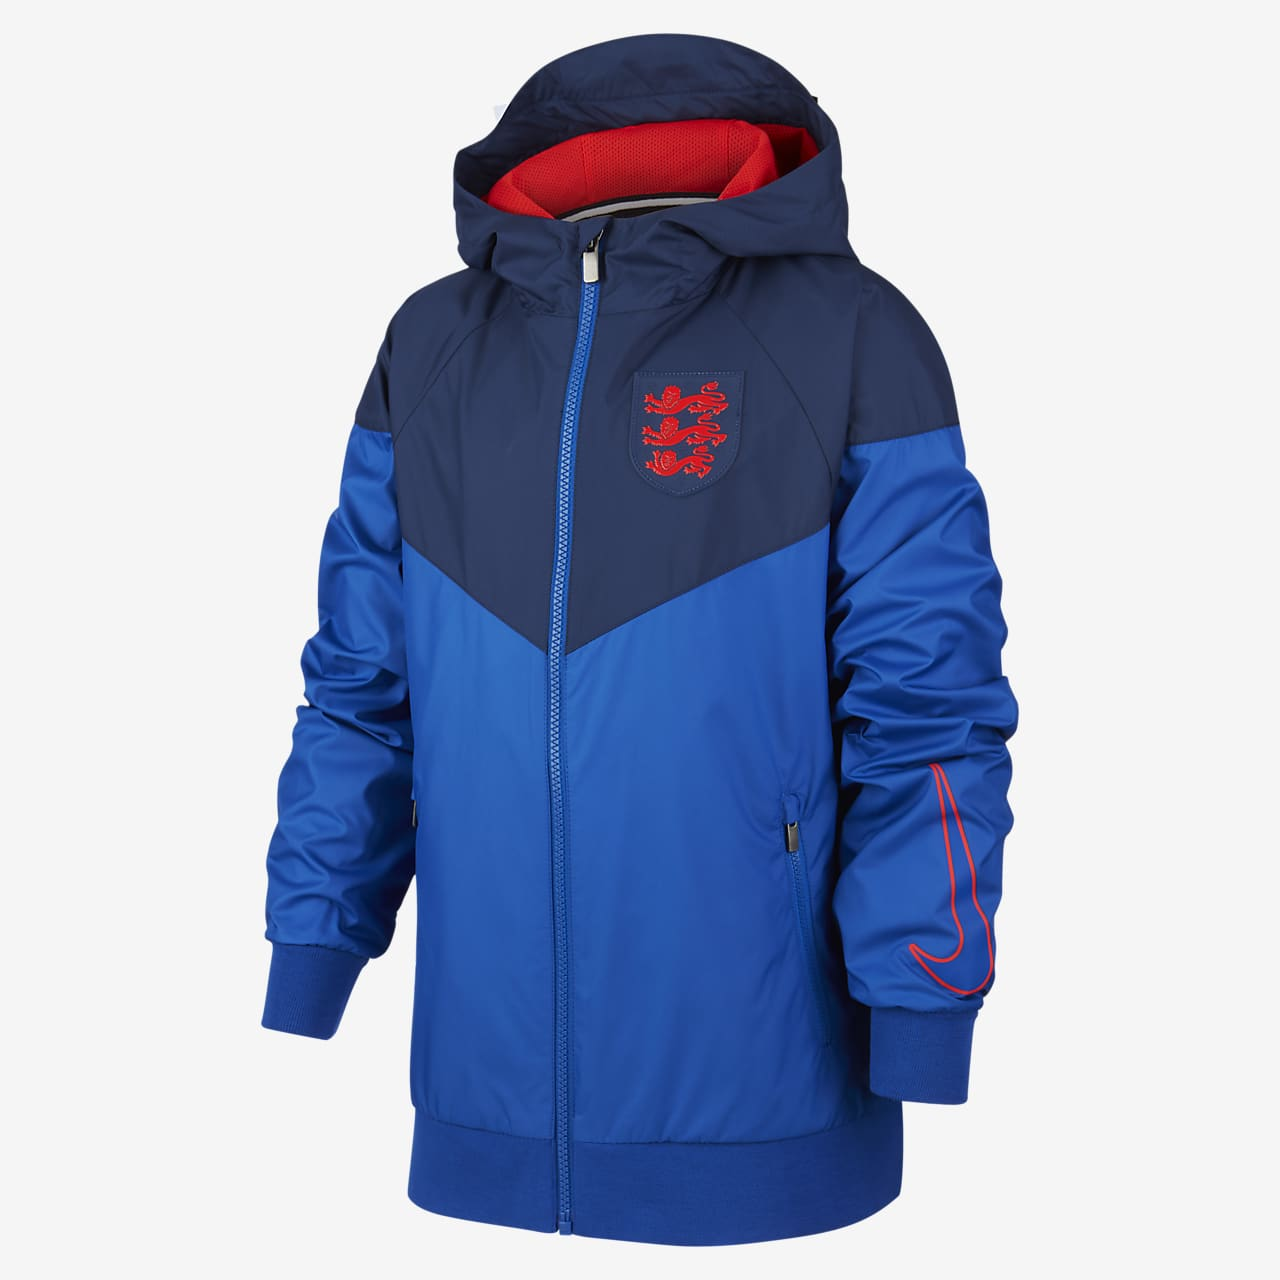 England Windrunner Big Kids' Woven Jacket